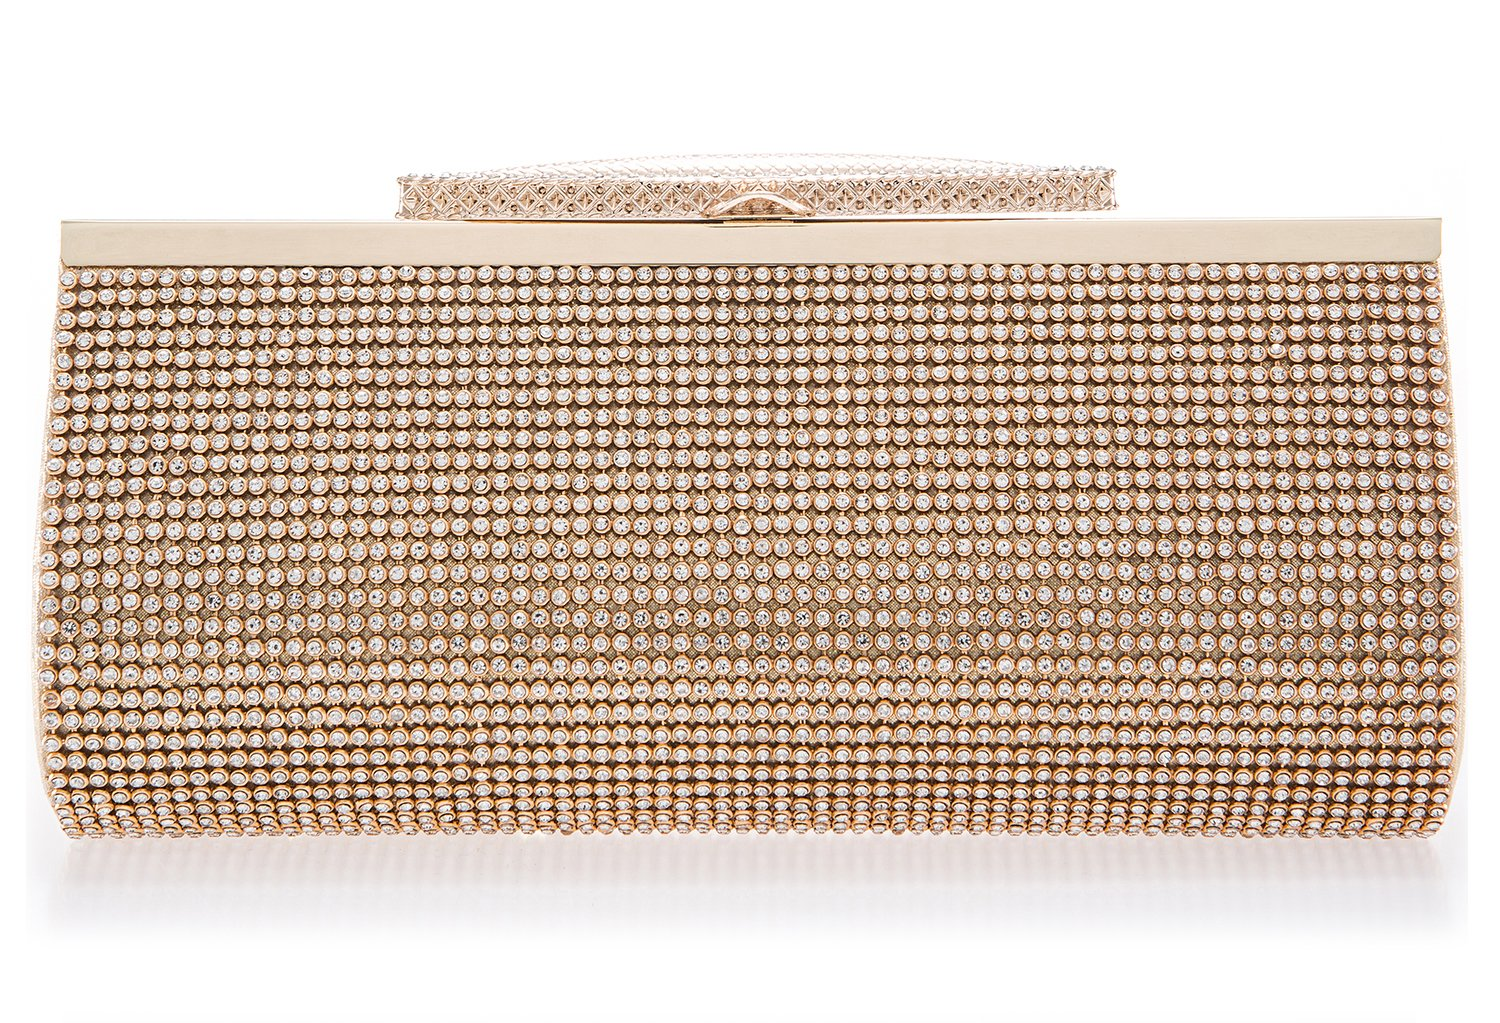 Crystal Clutch for Women Large Evening Bag